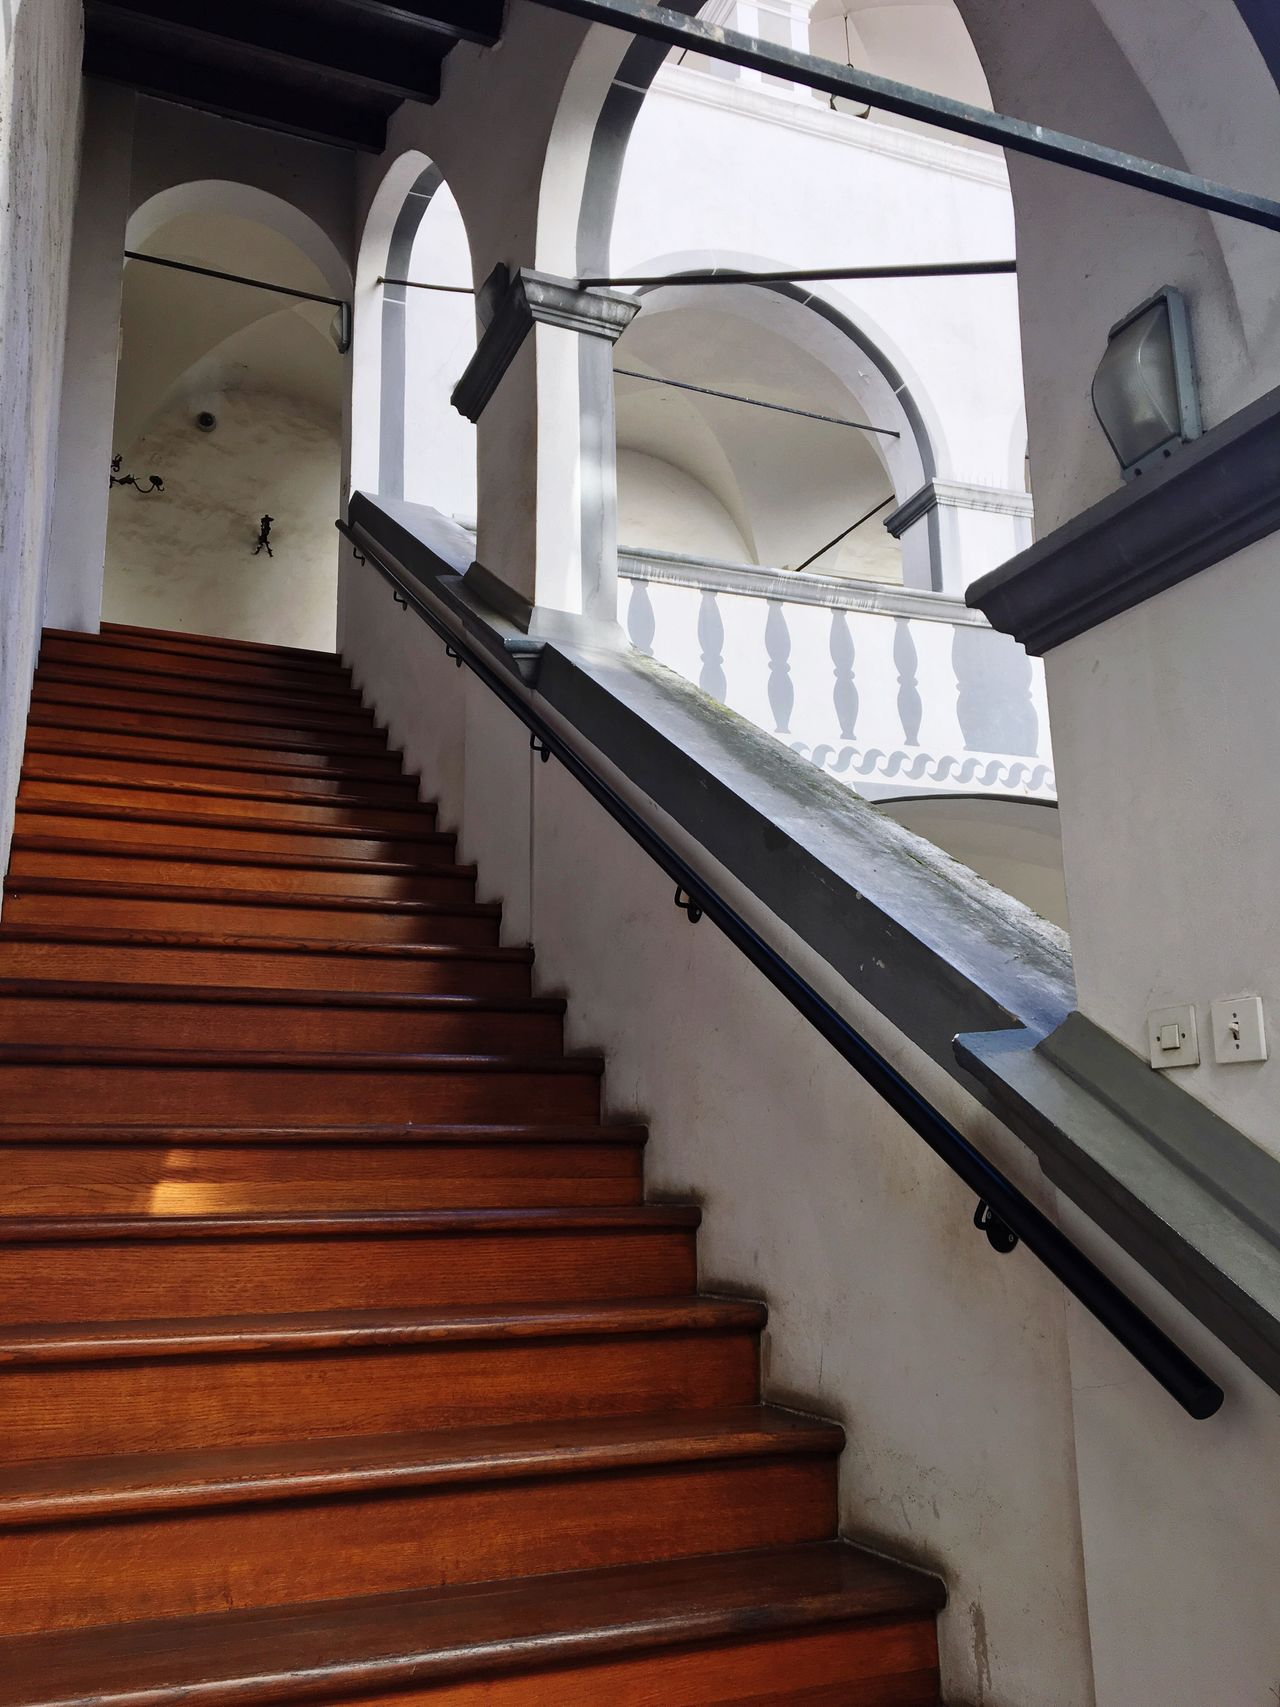 Staircase Steps Steps And Staircases Railing Architecture Built Structure Stairs Indoors  The Way Forward Hand Rail Low Angle View No People Stairway Day